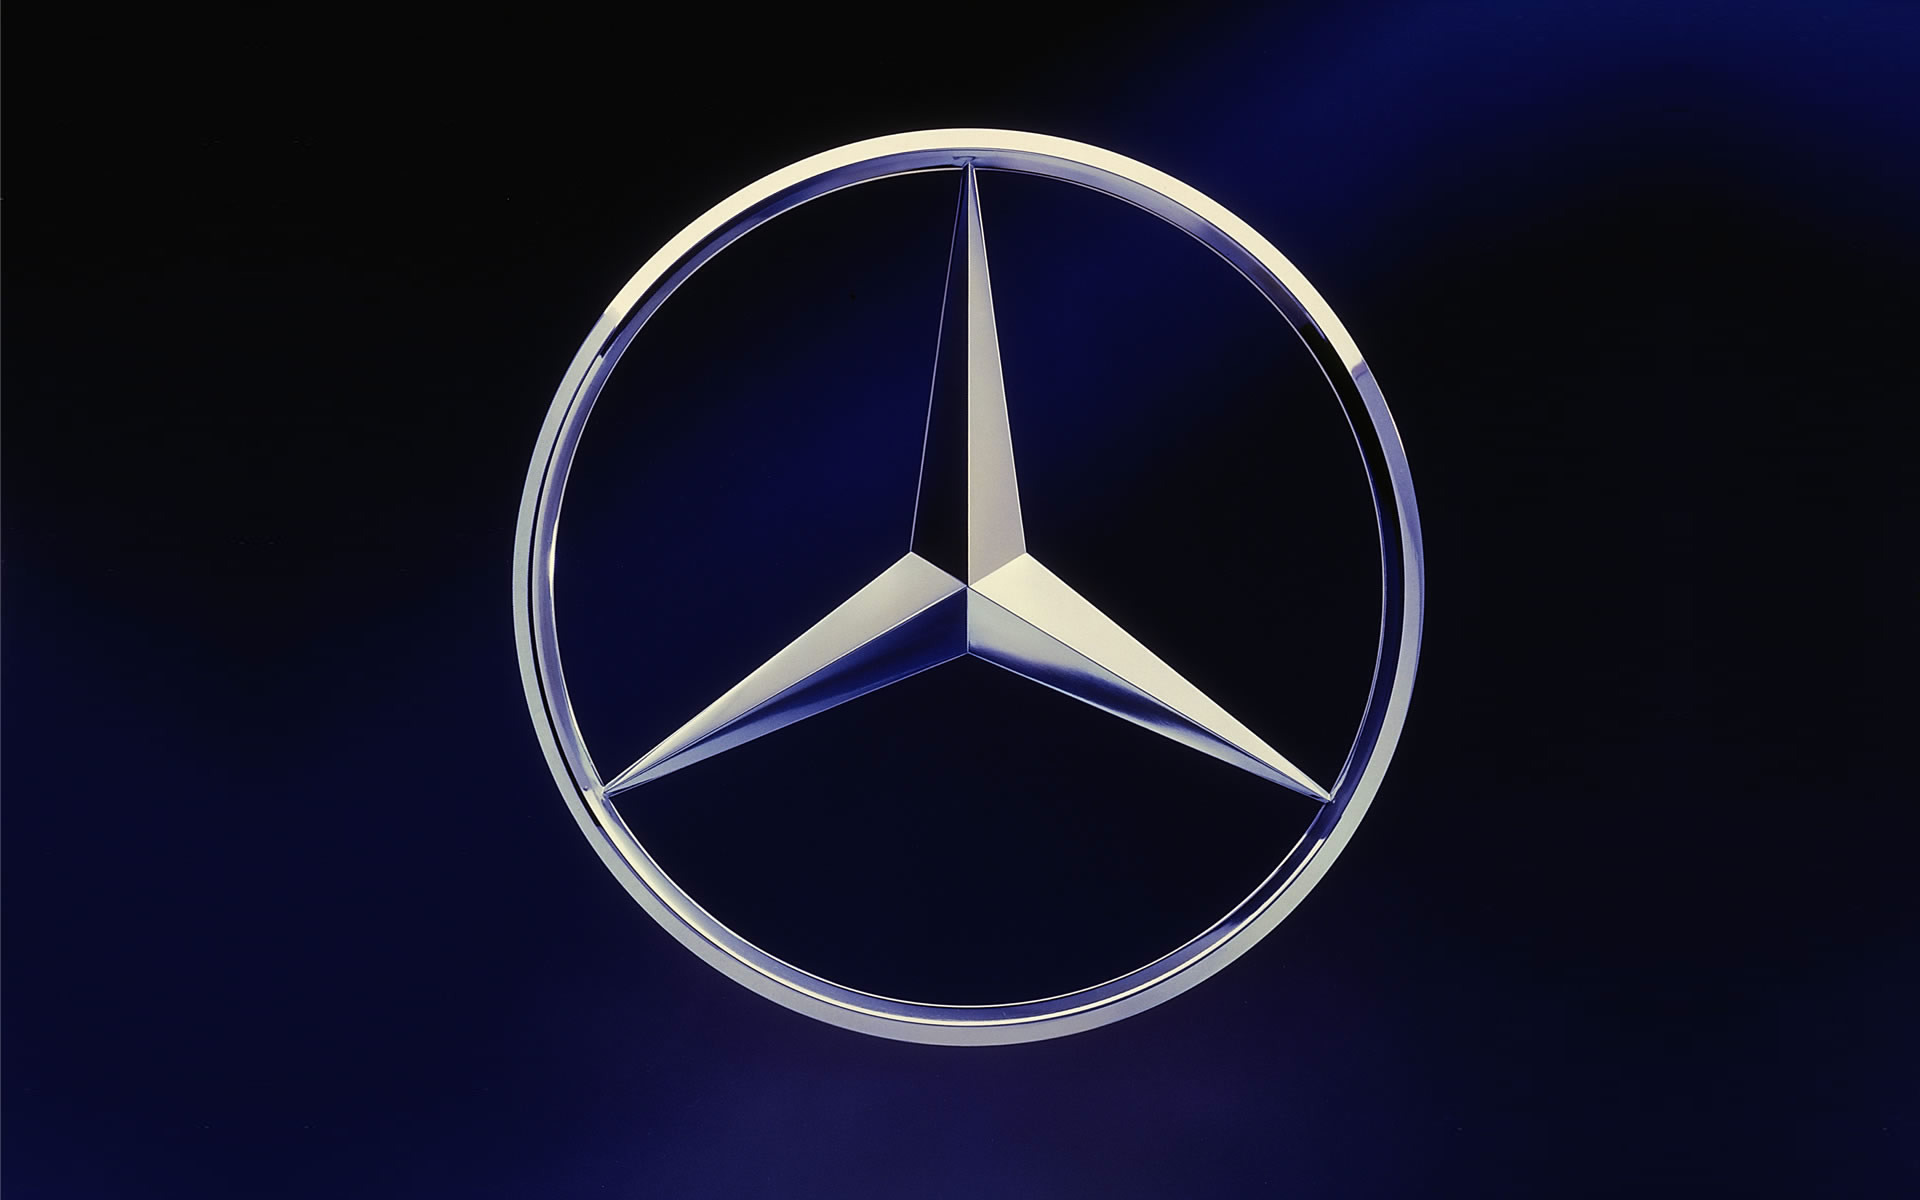 benz logo wallpapers wallpaper - photo #22